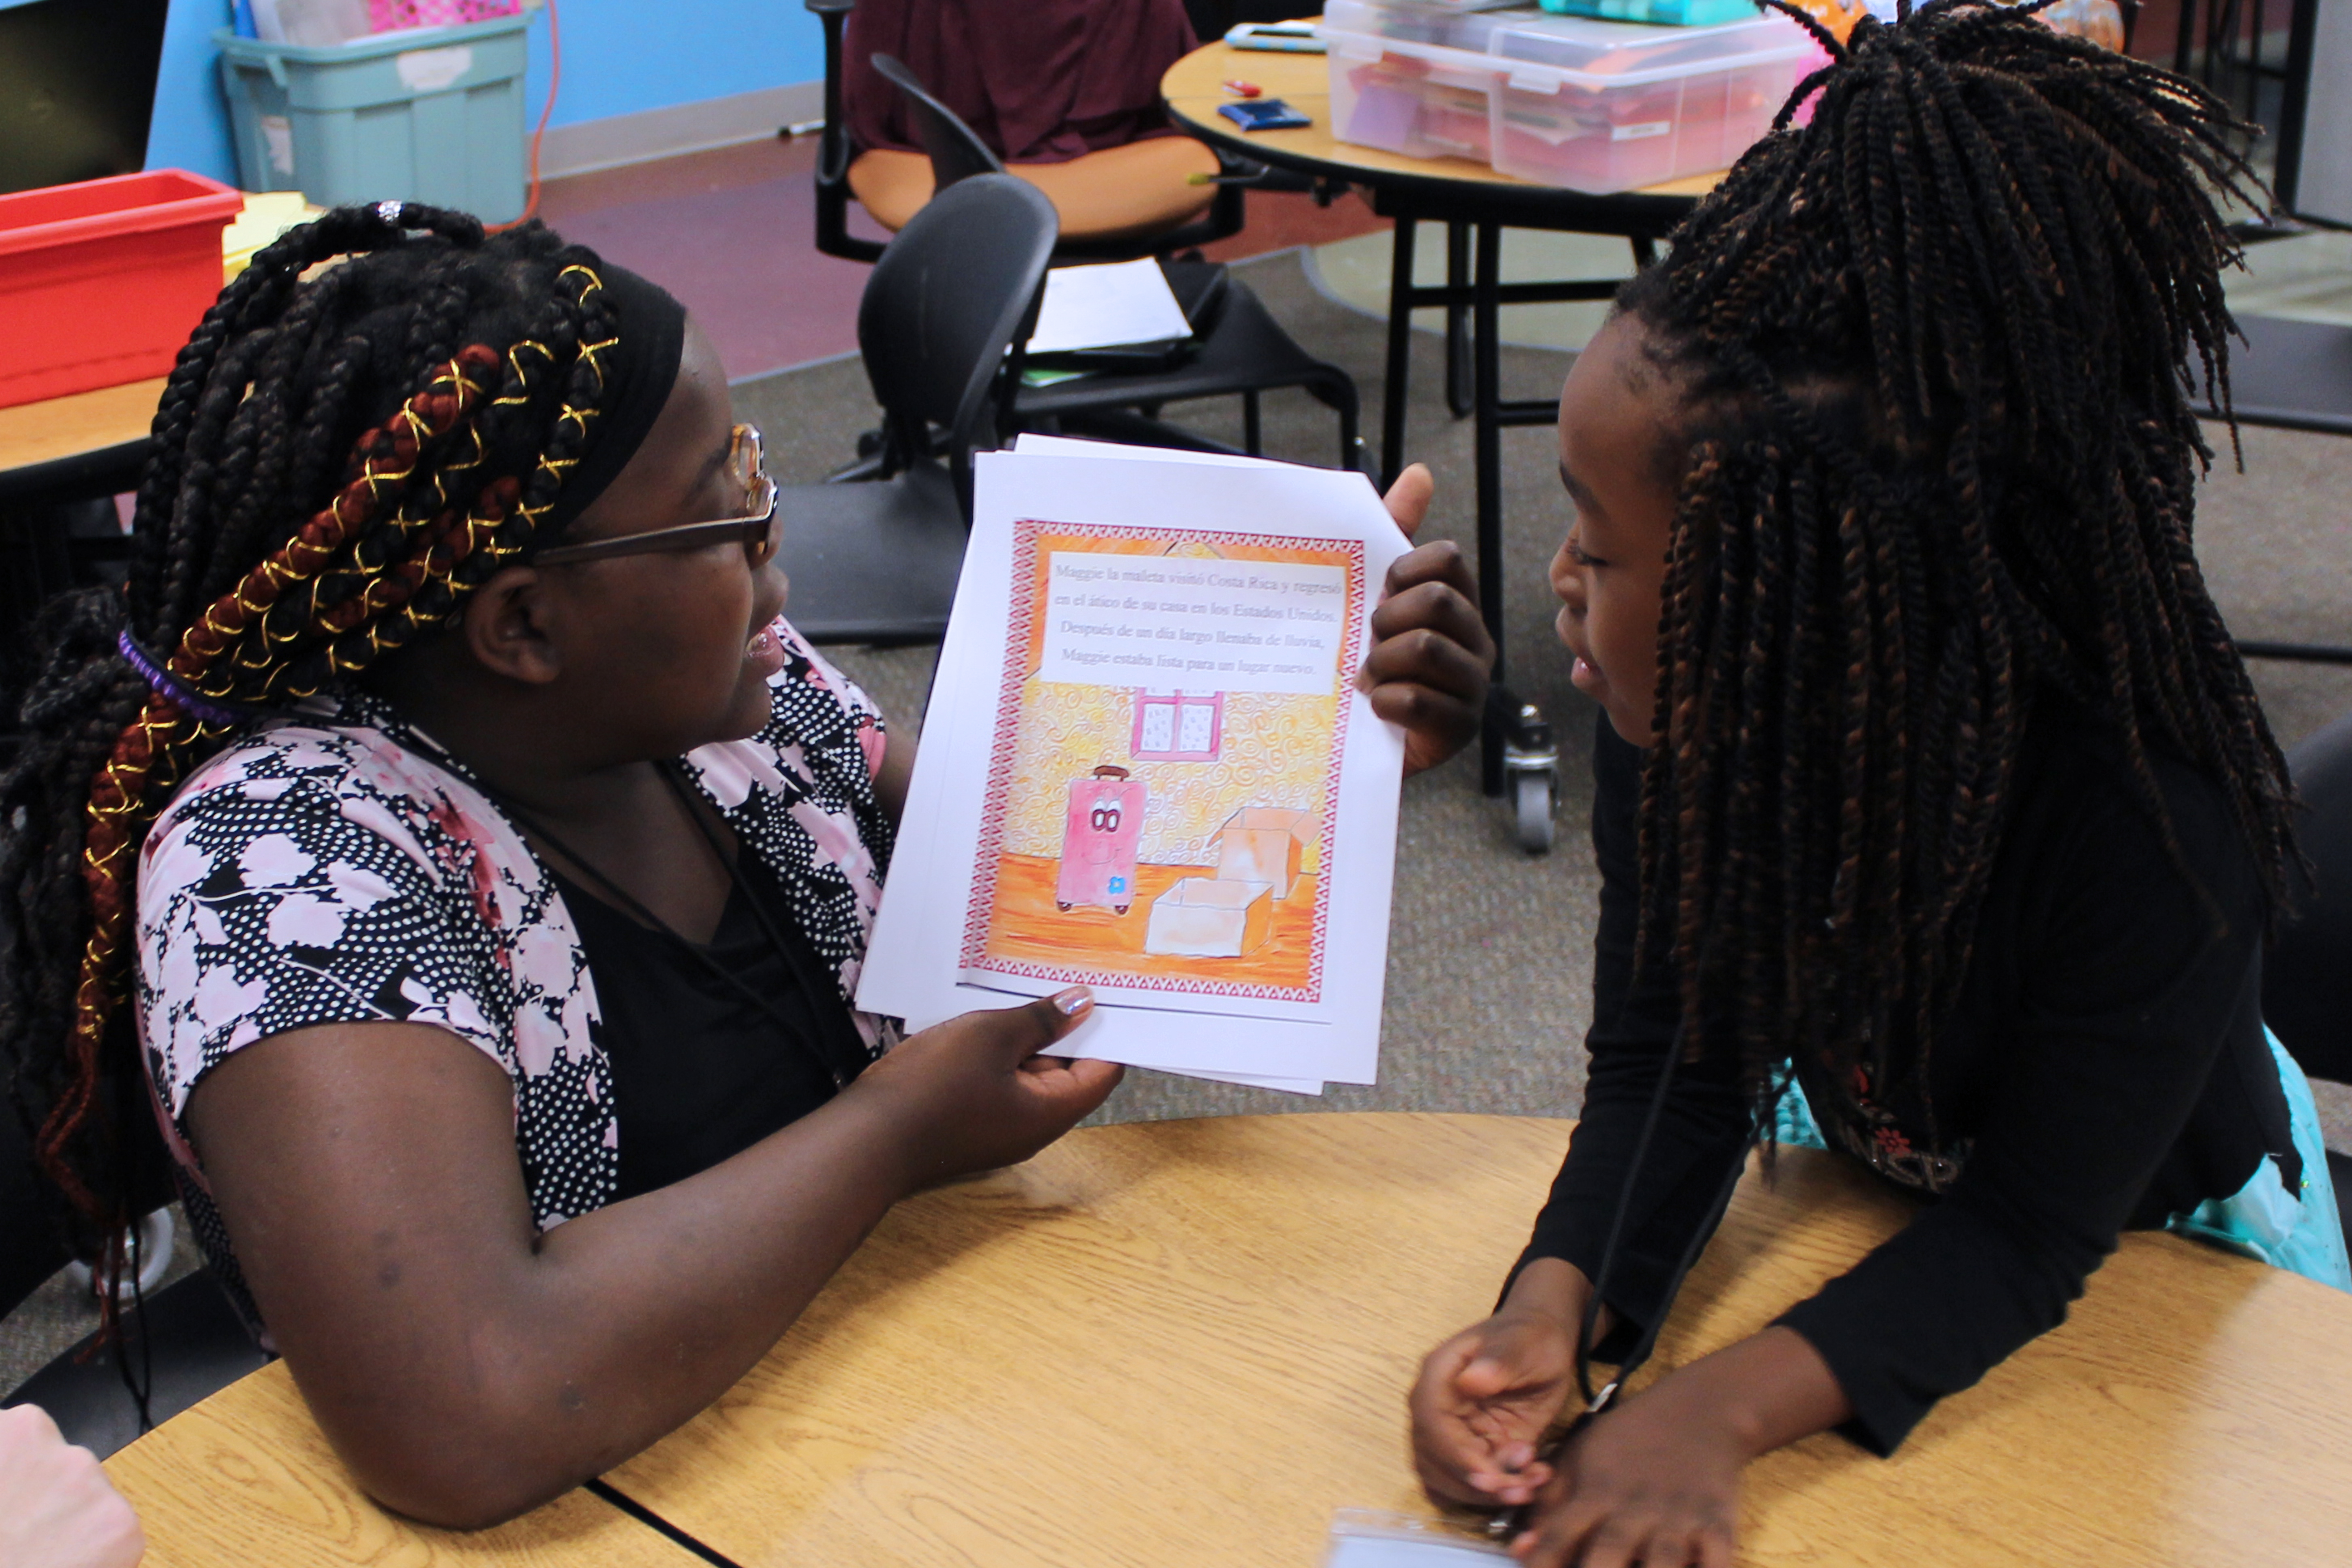 Unity youth read a book in Spanish